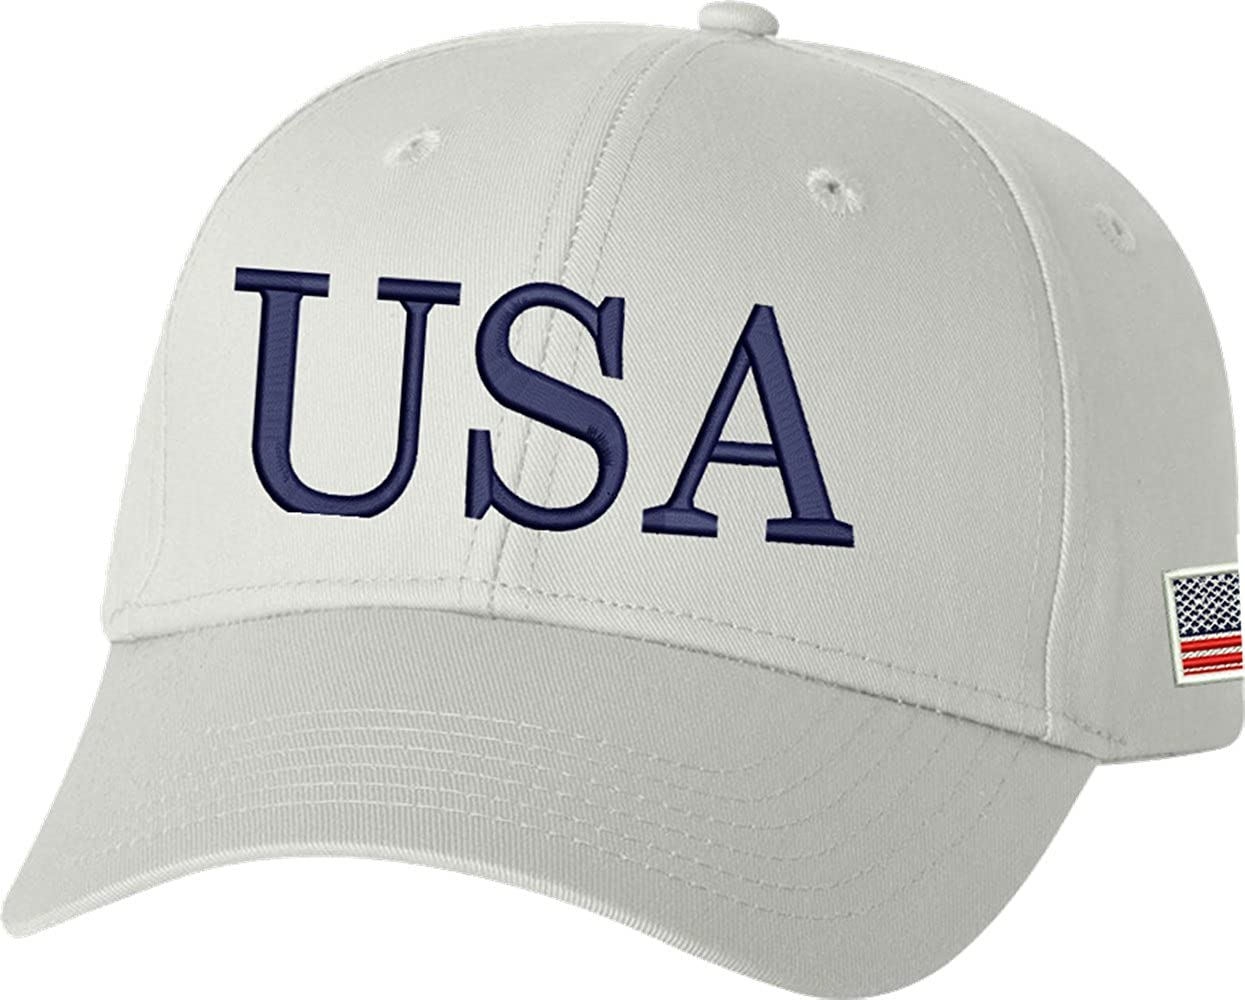 b1082d7f88c41 Peerless Embroidery Company USA Trump Hat 45th President Make America Great  Again Snapback at Amazon Men s Clothing store